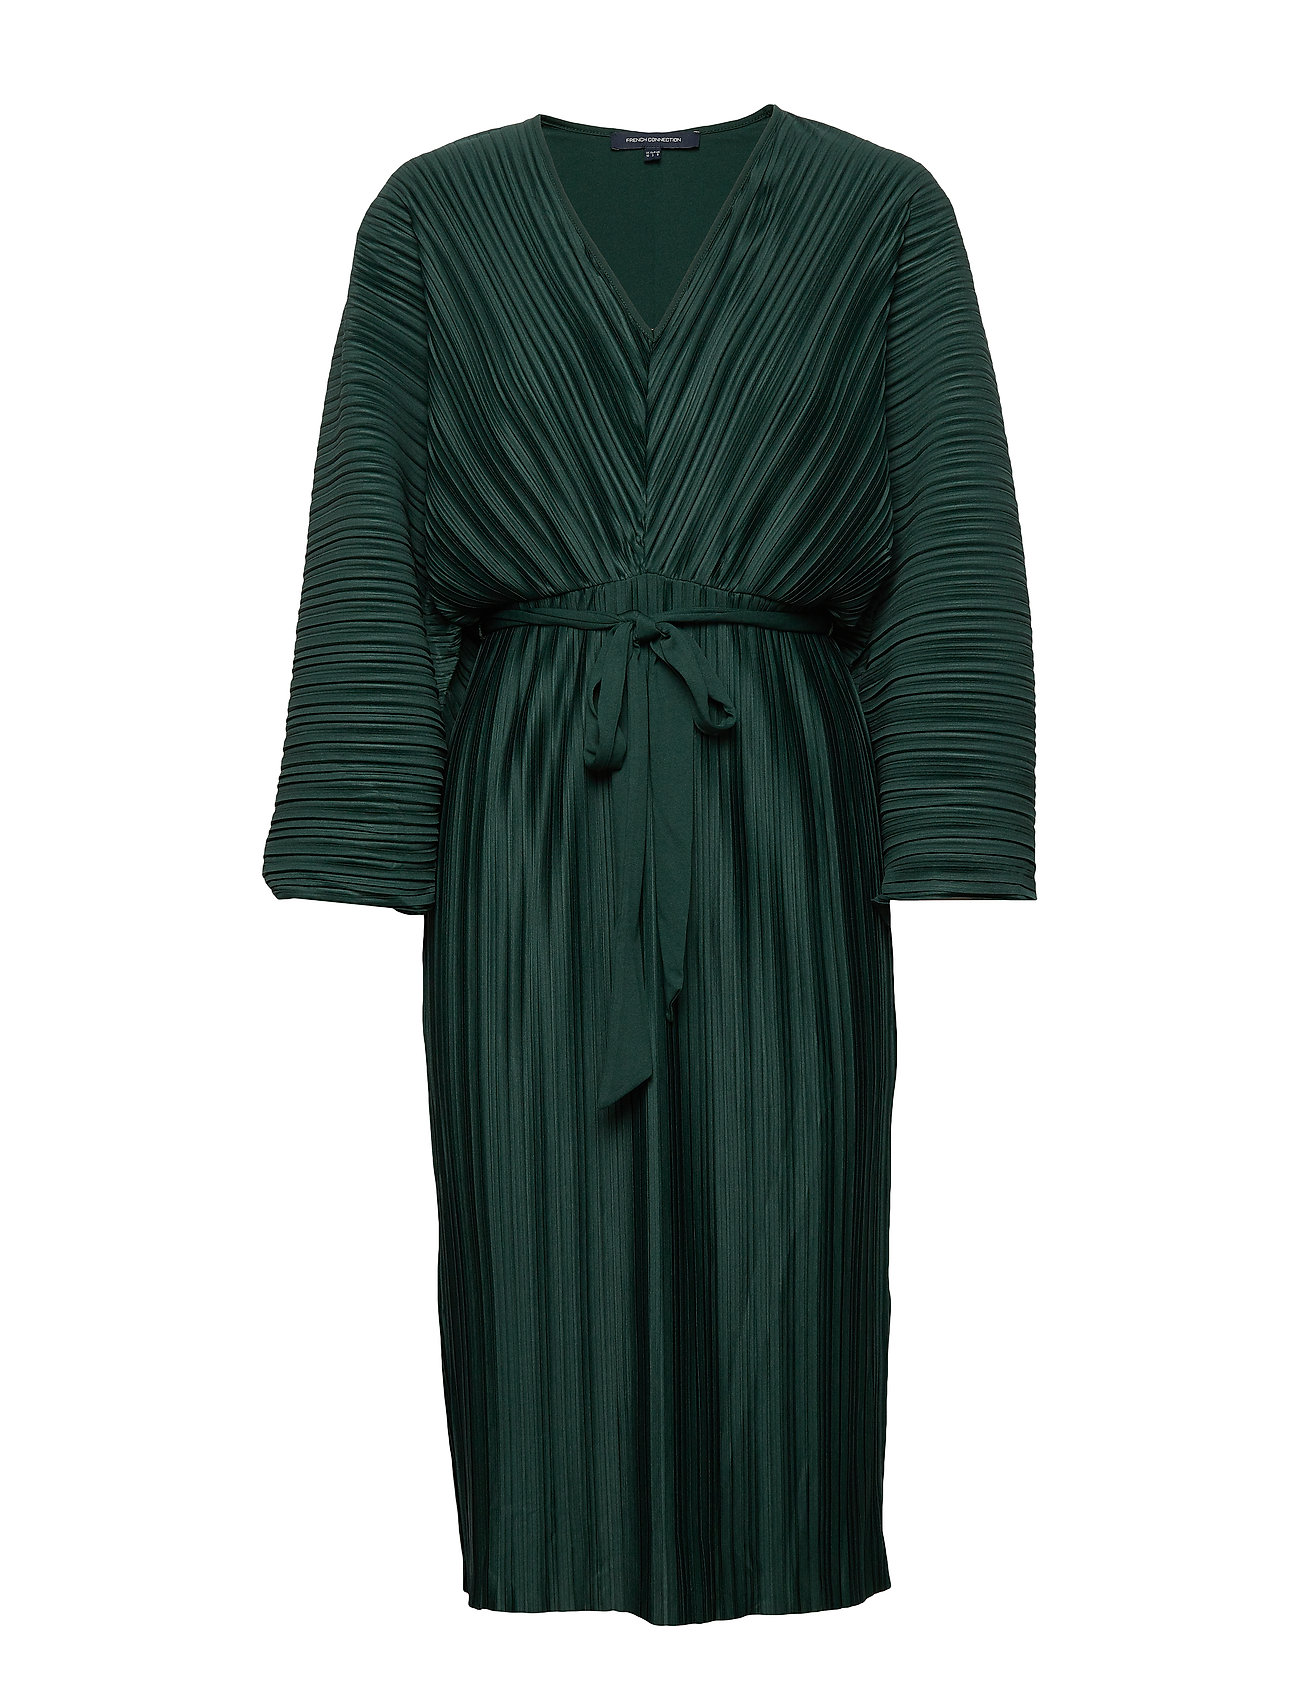 French Connection REGI PLEATED SLEEVED DRESS - DARK BAYOU GREEN